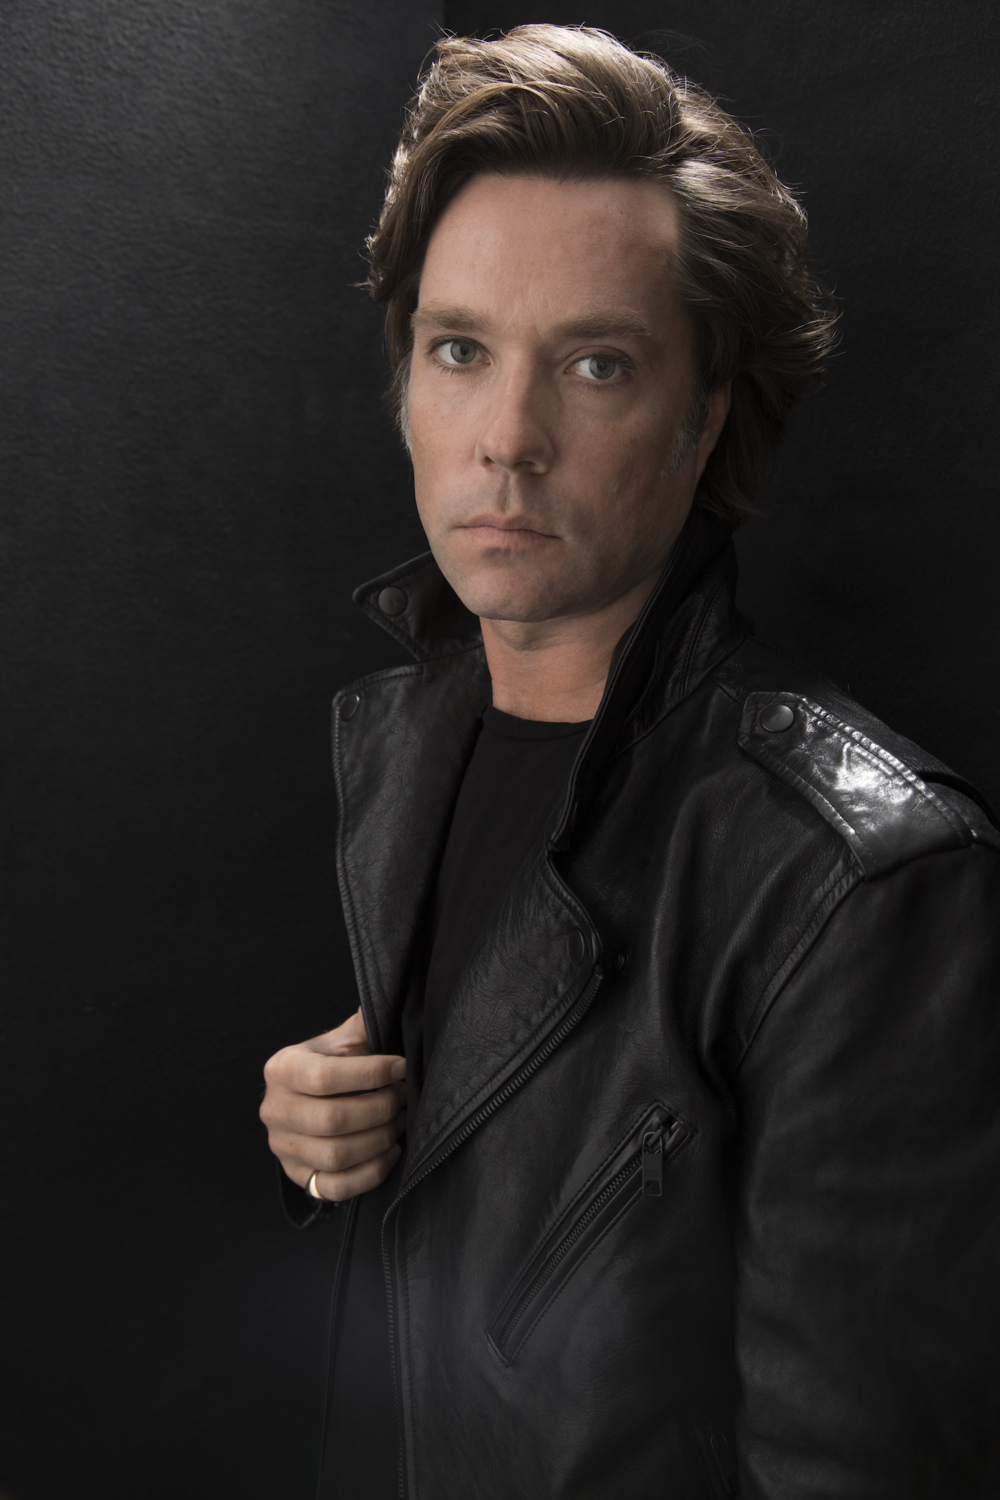 Rufus Wainwright,  Friday: 4/21/17 at 8 pm